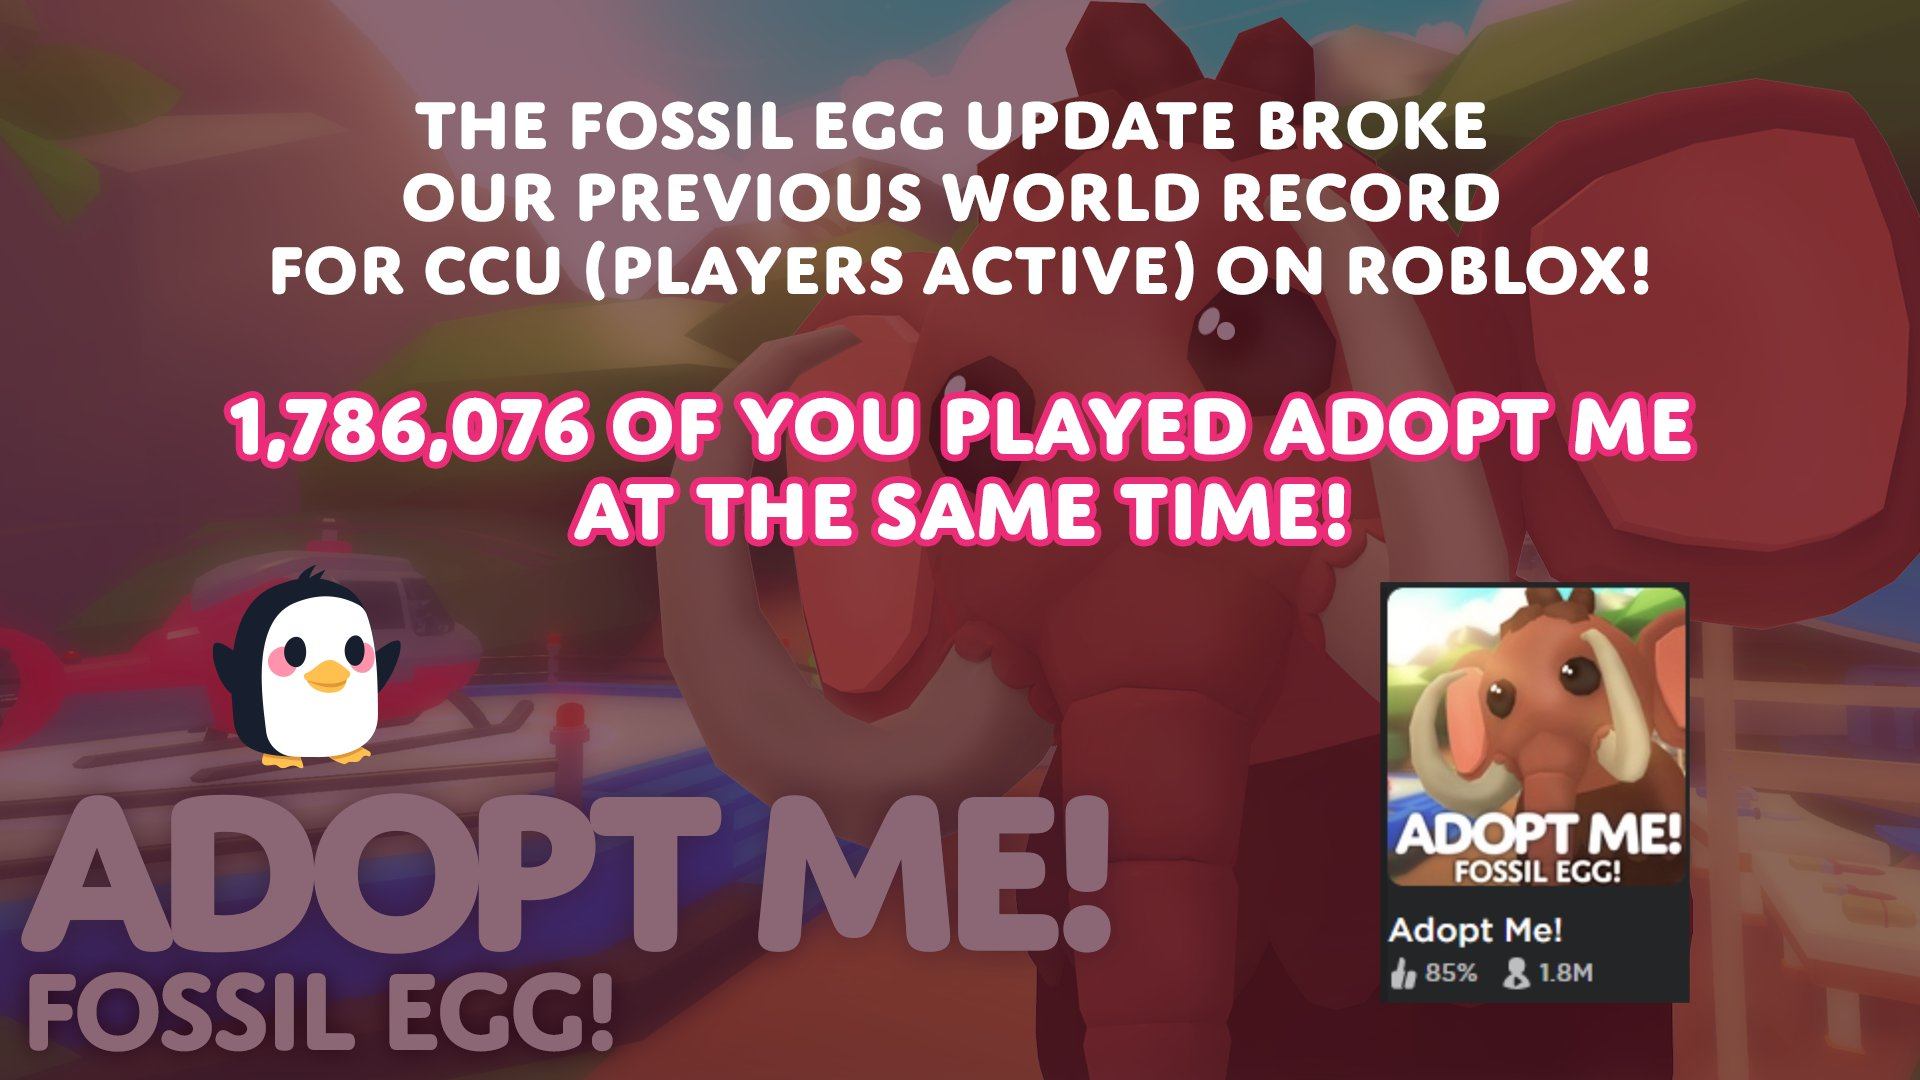 Adopt Me On Twitter 1 7m Of You Played The Fossil Egg Update At The Same Time We Can T Thank You All Enough For Loving The New Update As Much As We